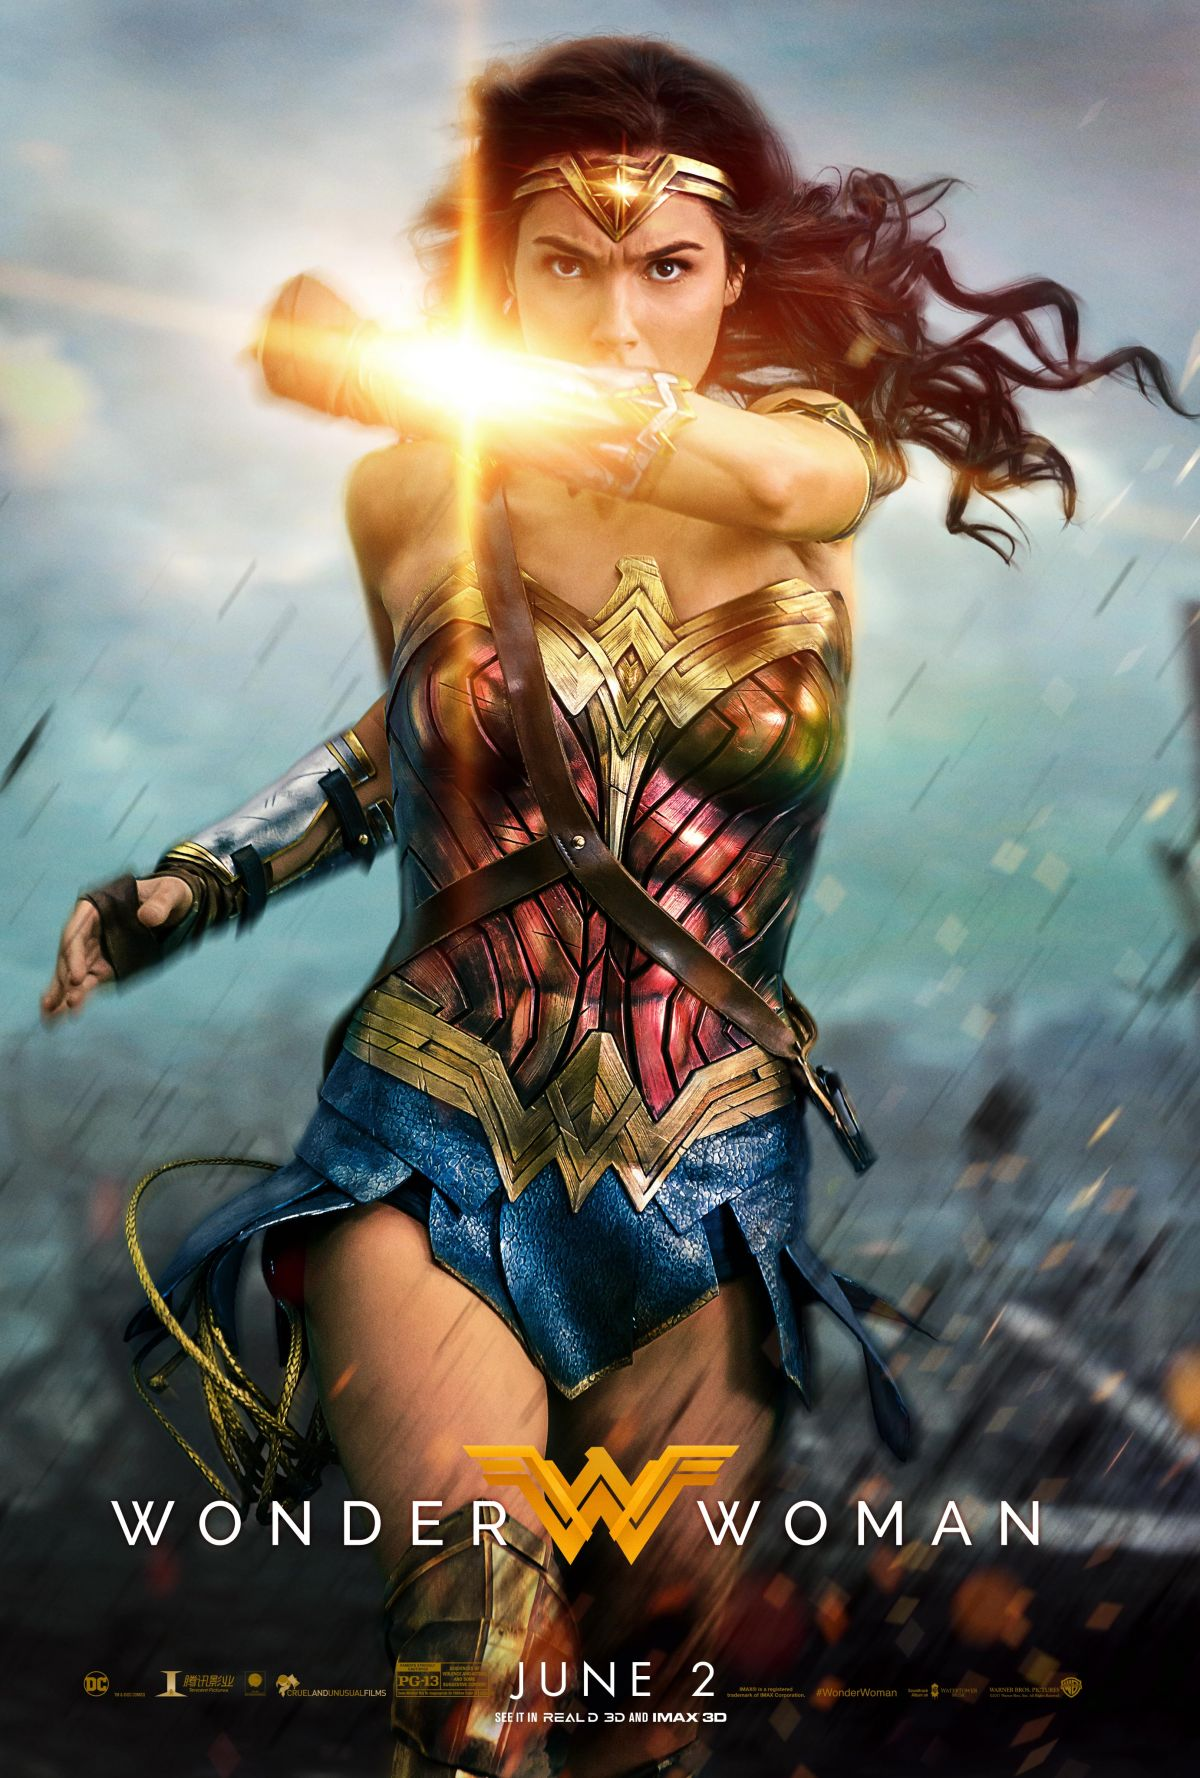 GAL GADOT - Wonder Woman Posters and Stills, 2017 ...